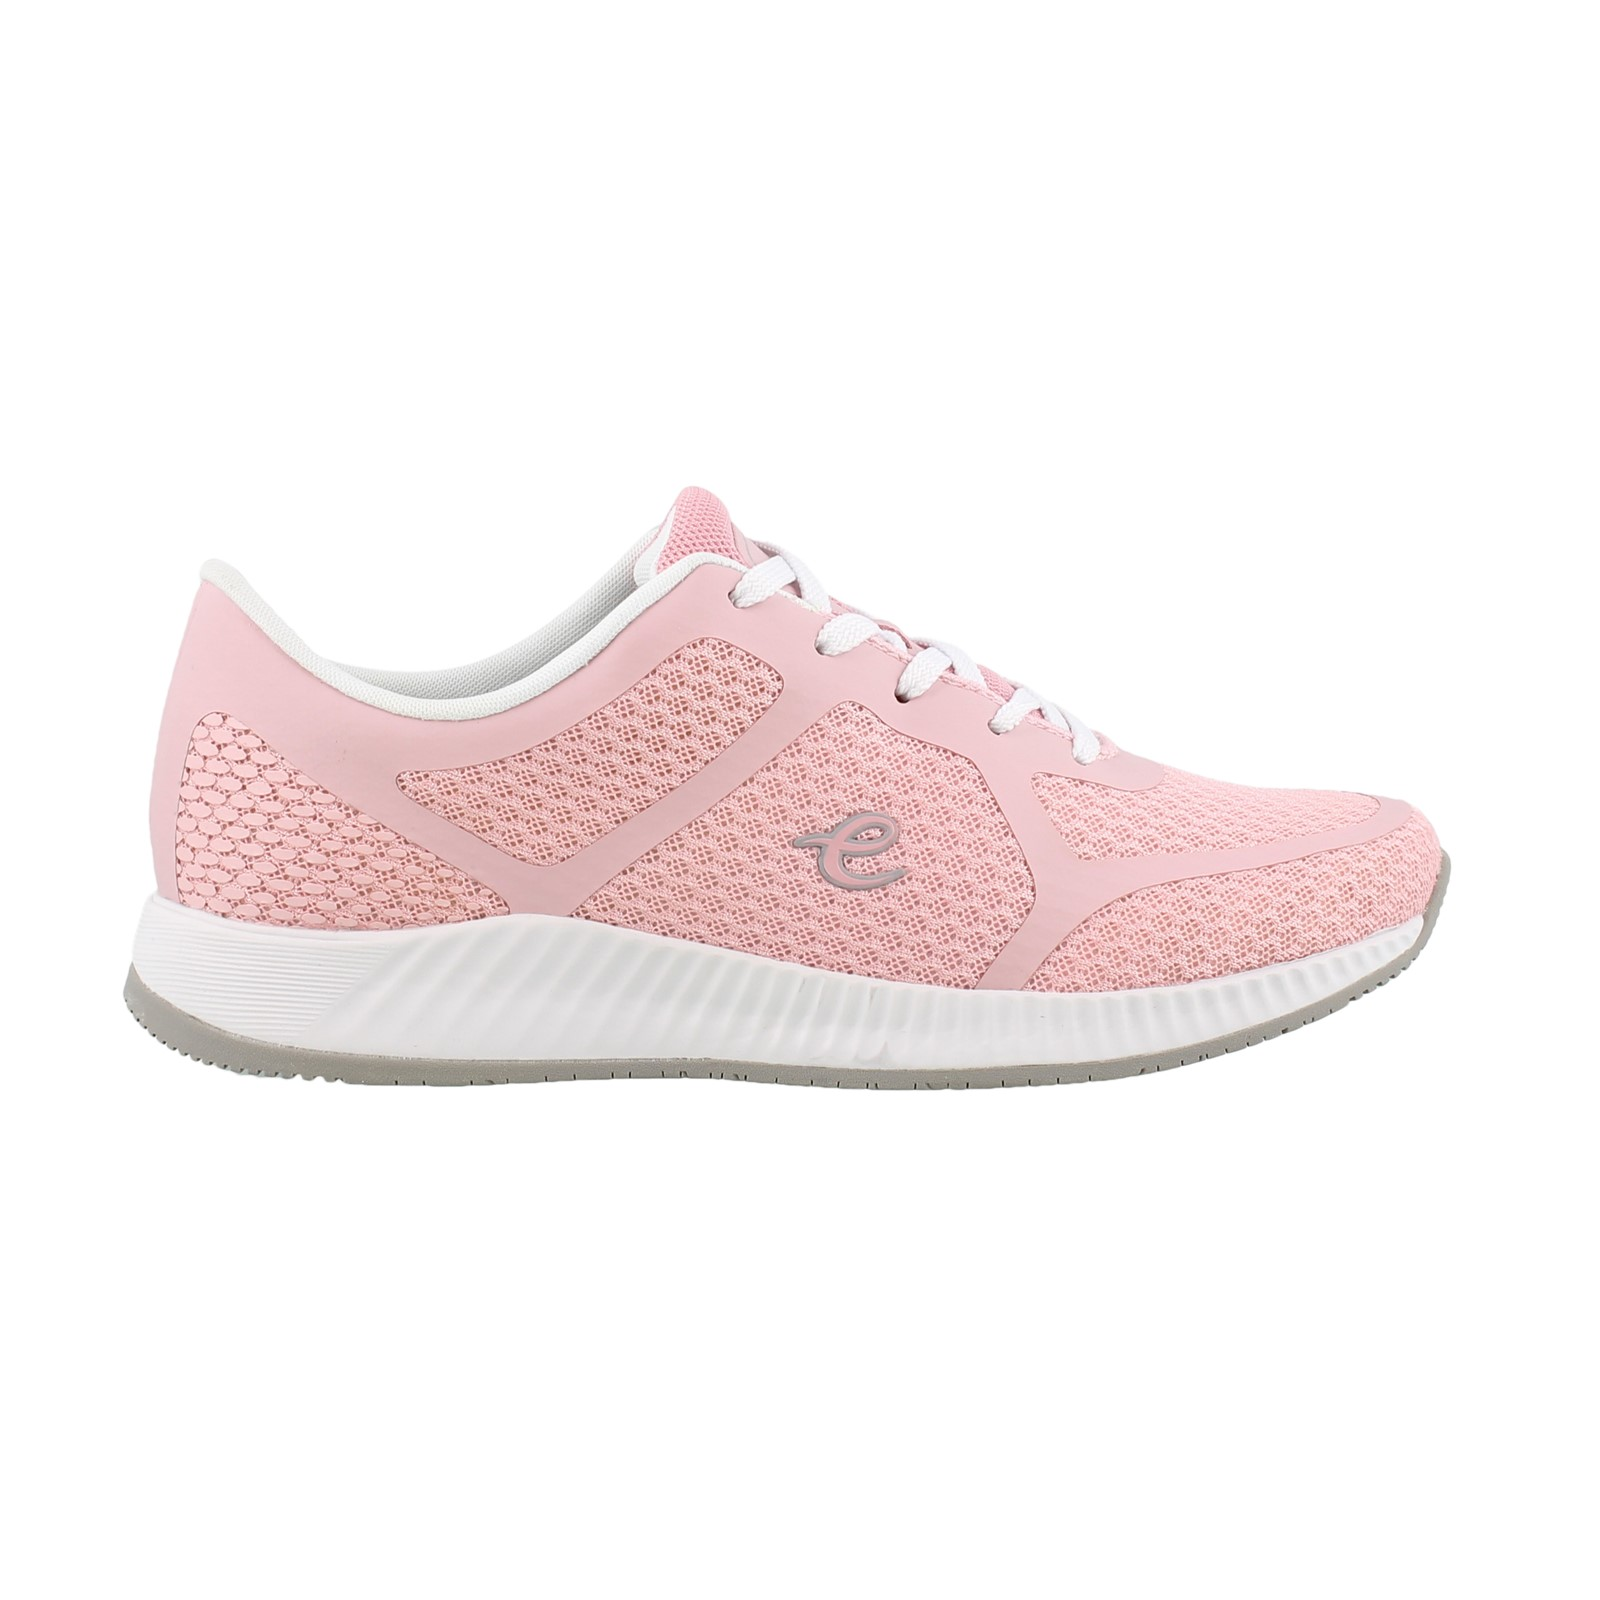 Women's Easy Spirit, Faisal Sneaker